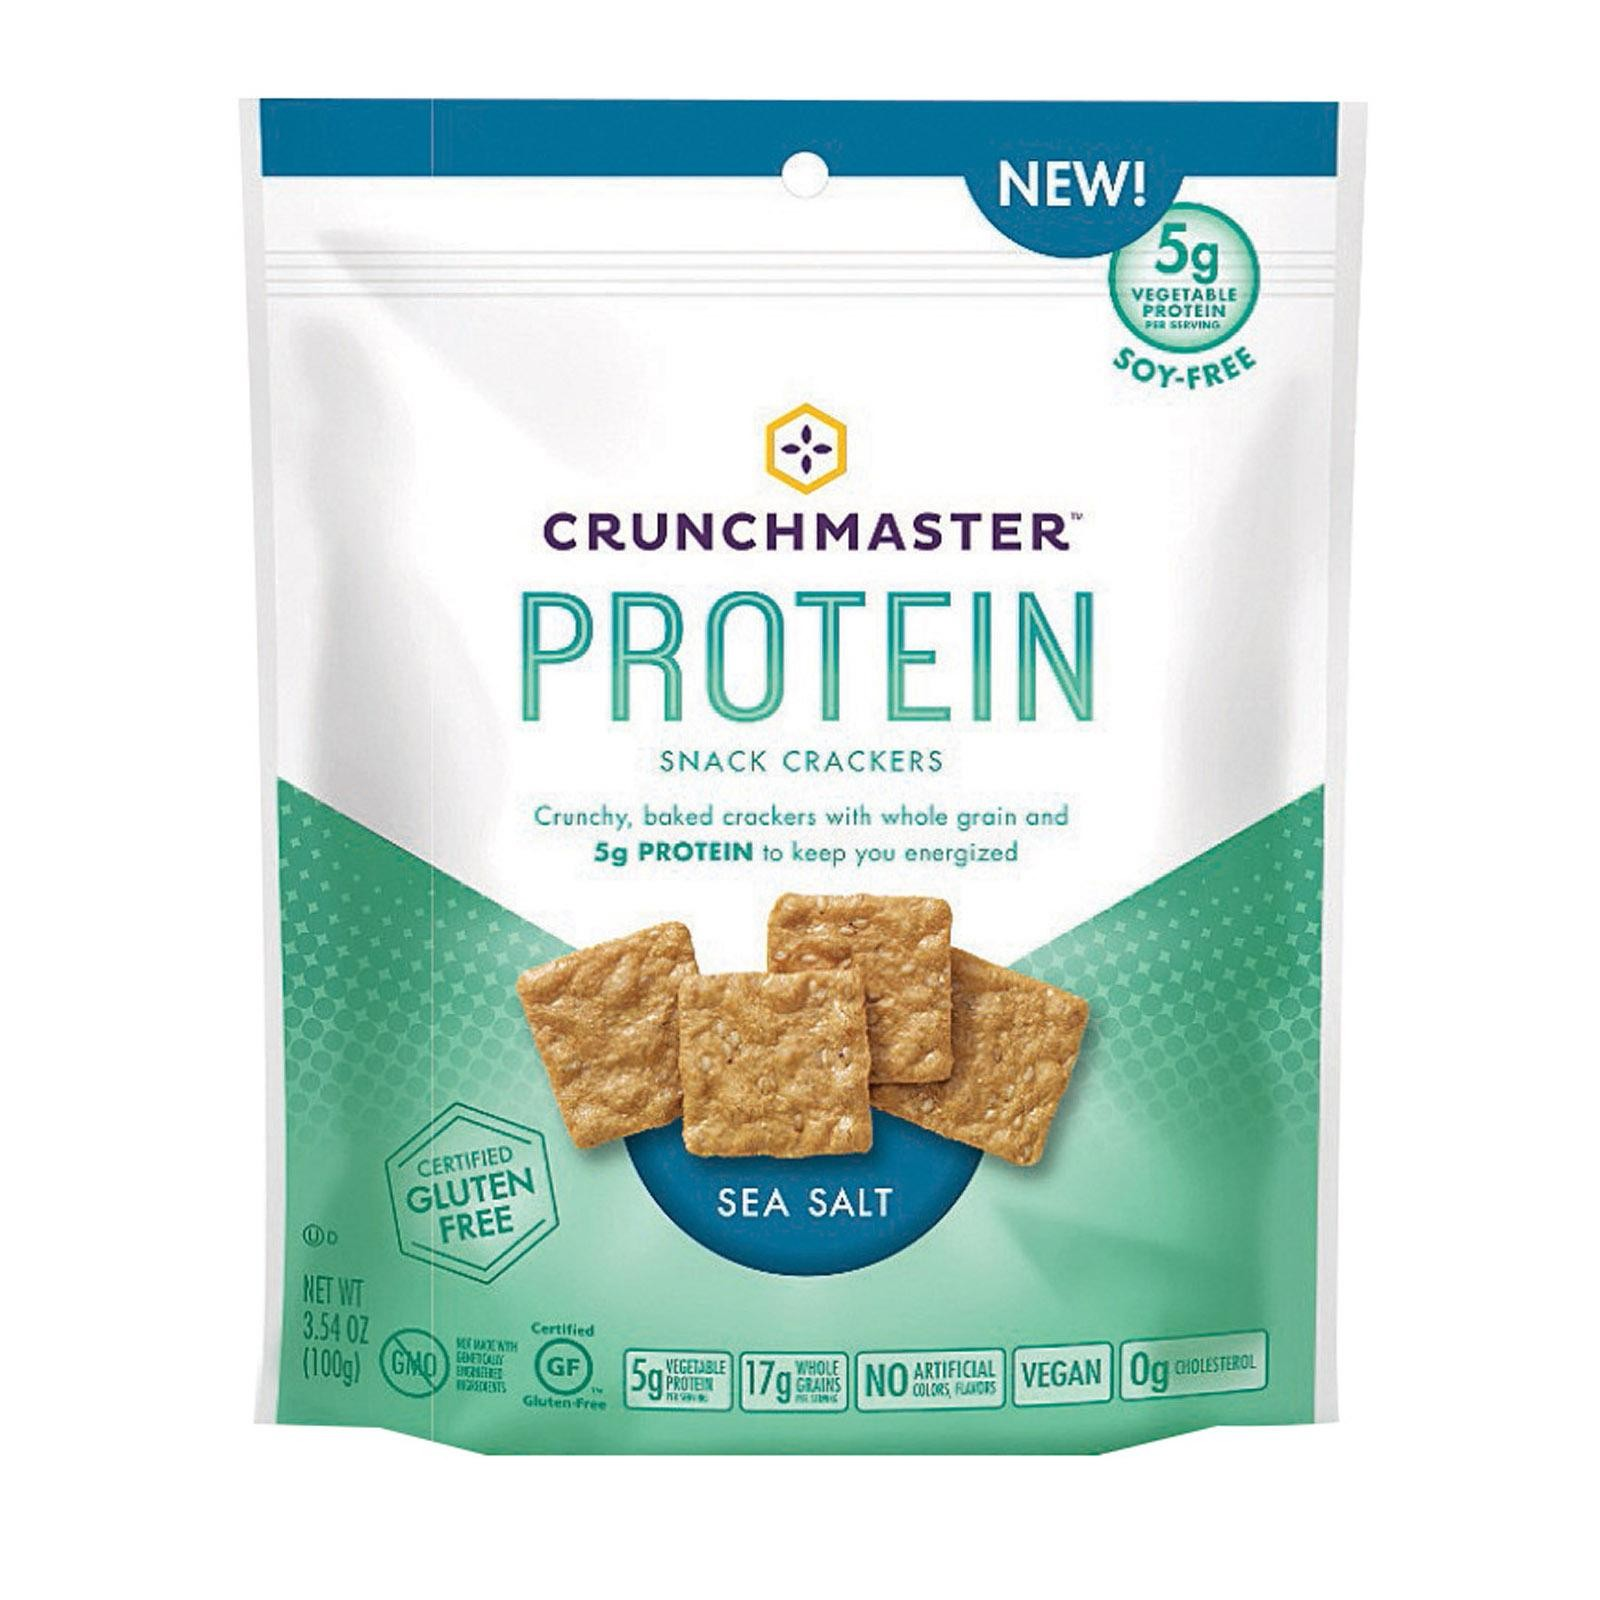 Crunchmaster Protein Crackers - Sea Salt - pack of 12 - 3.54 Oz